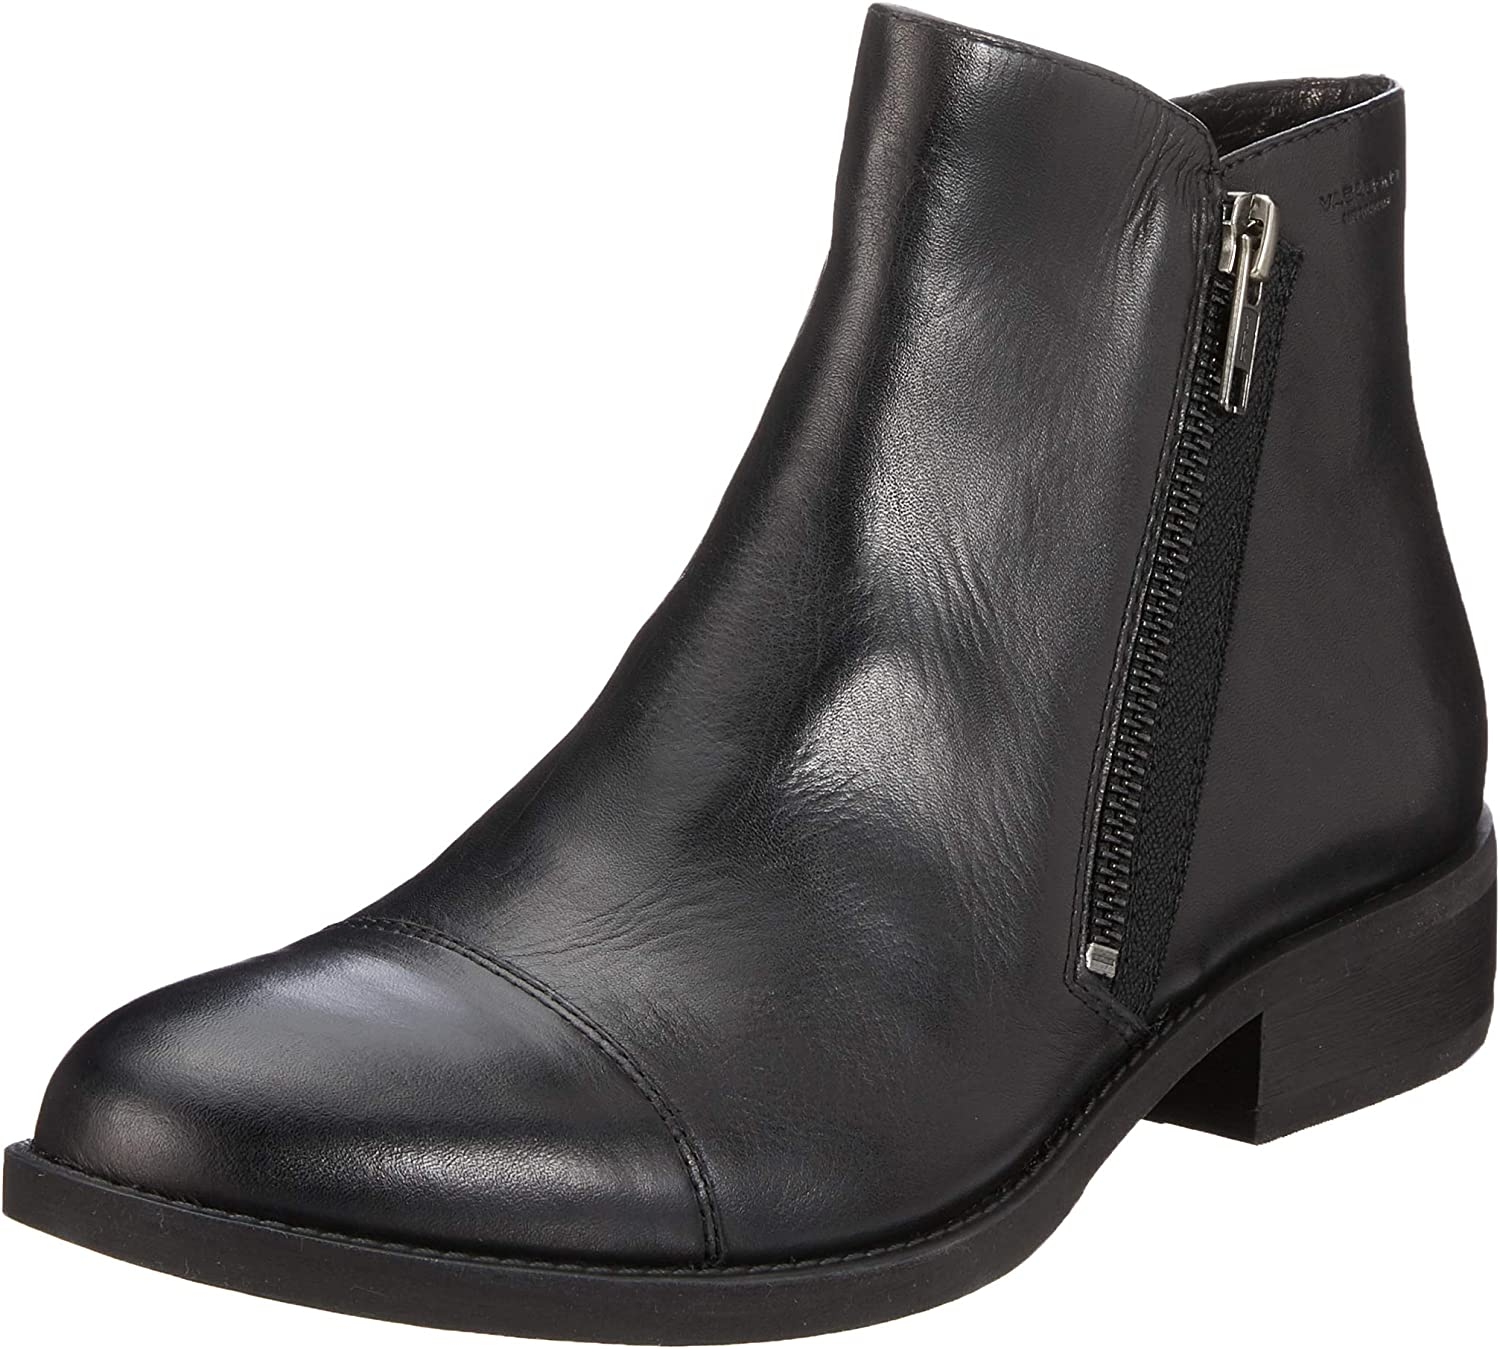 Vagabond Women's Cary 4620-001-20 Leather Zip Ankle Boot Black